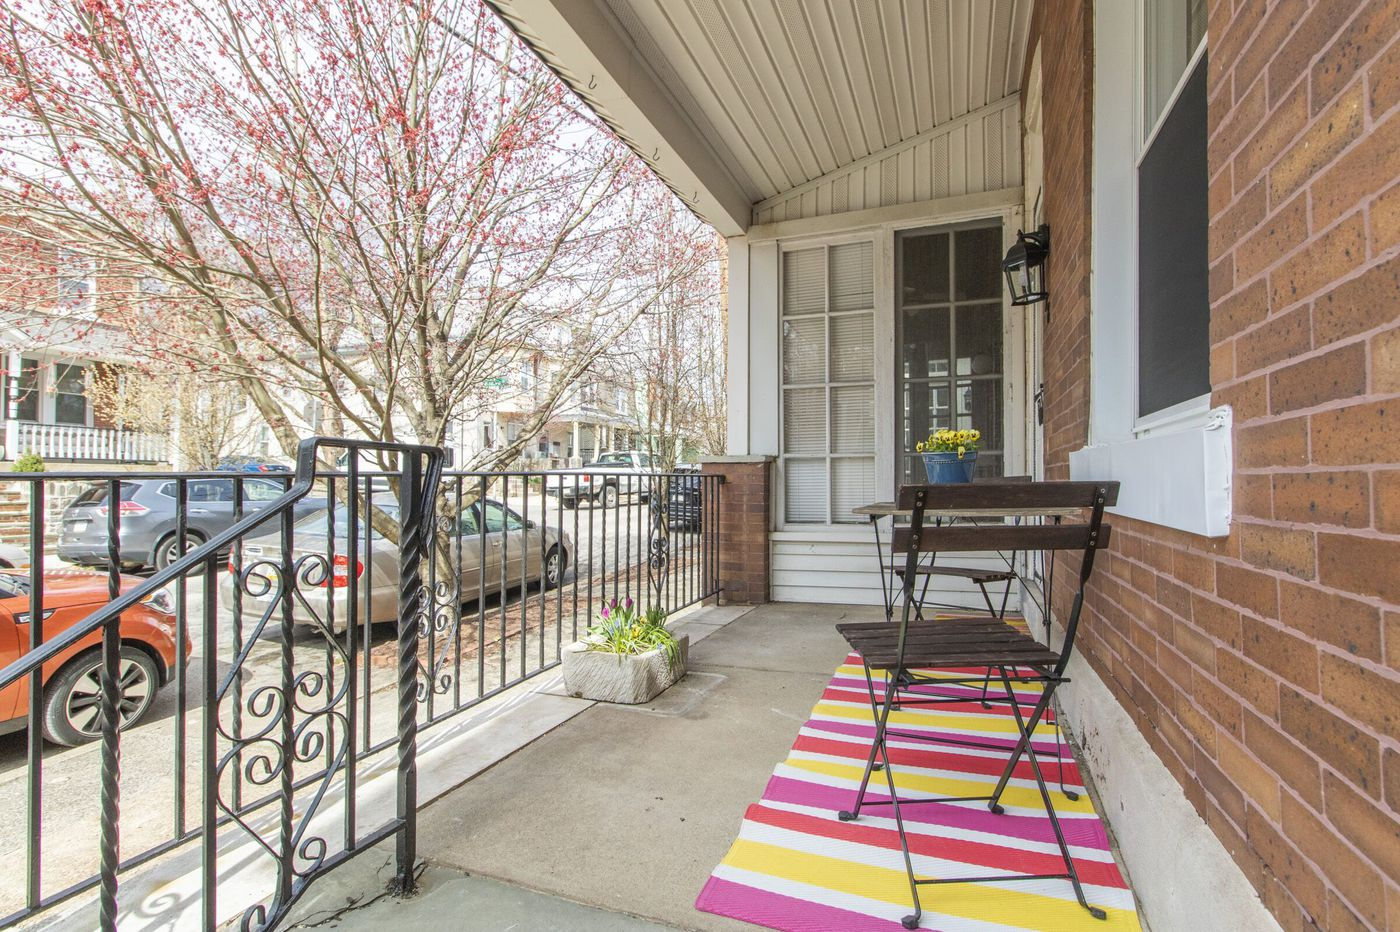 On the market: A brick twin in Chestnut Hill for $349,900